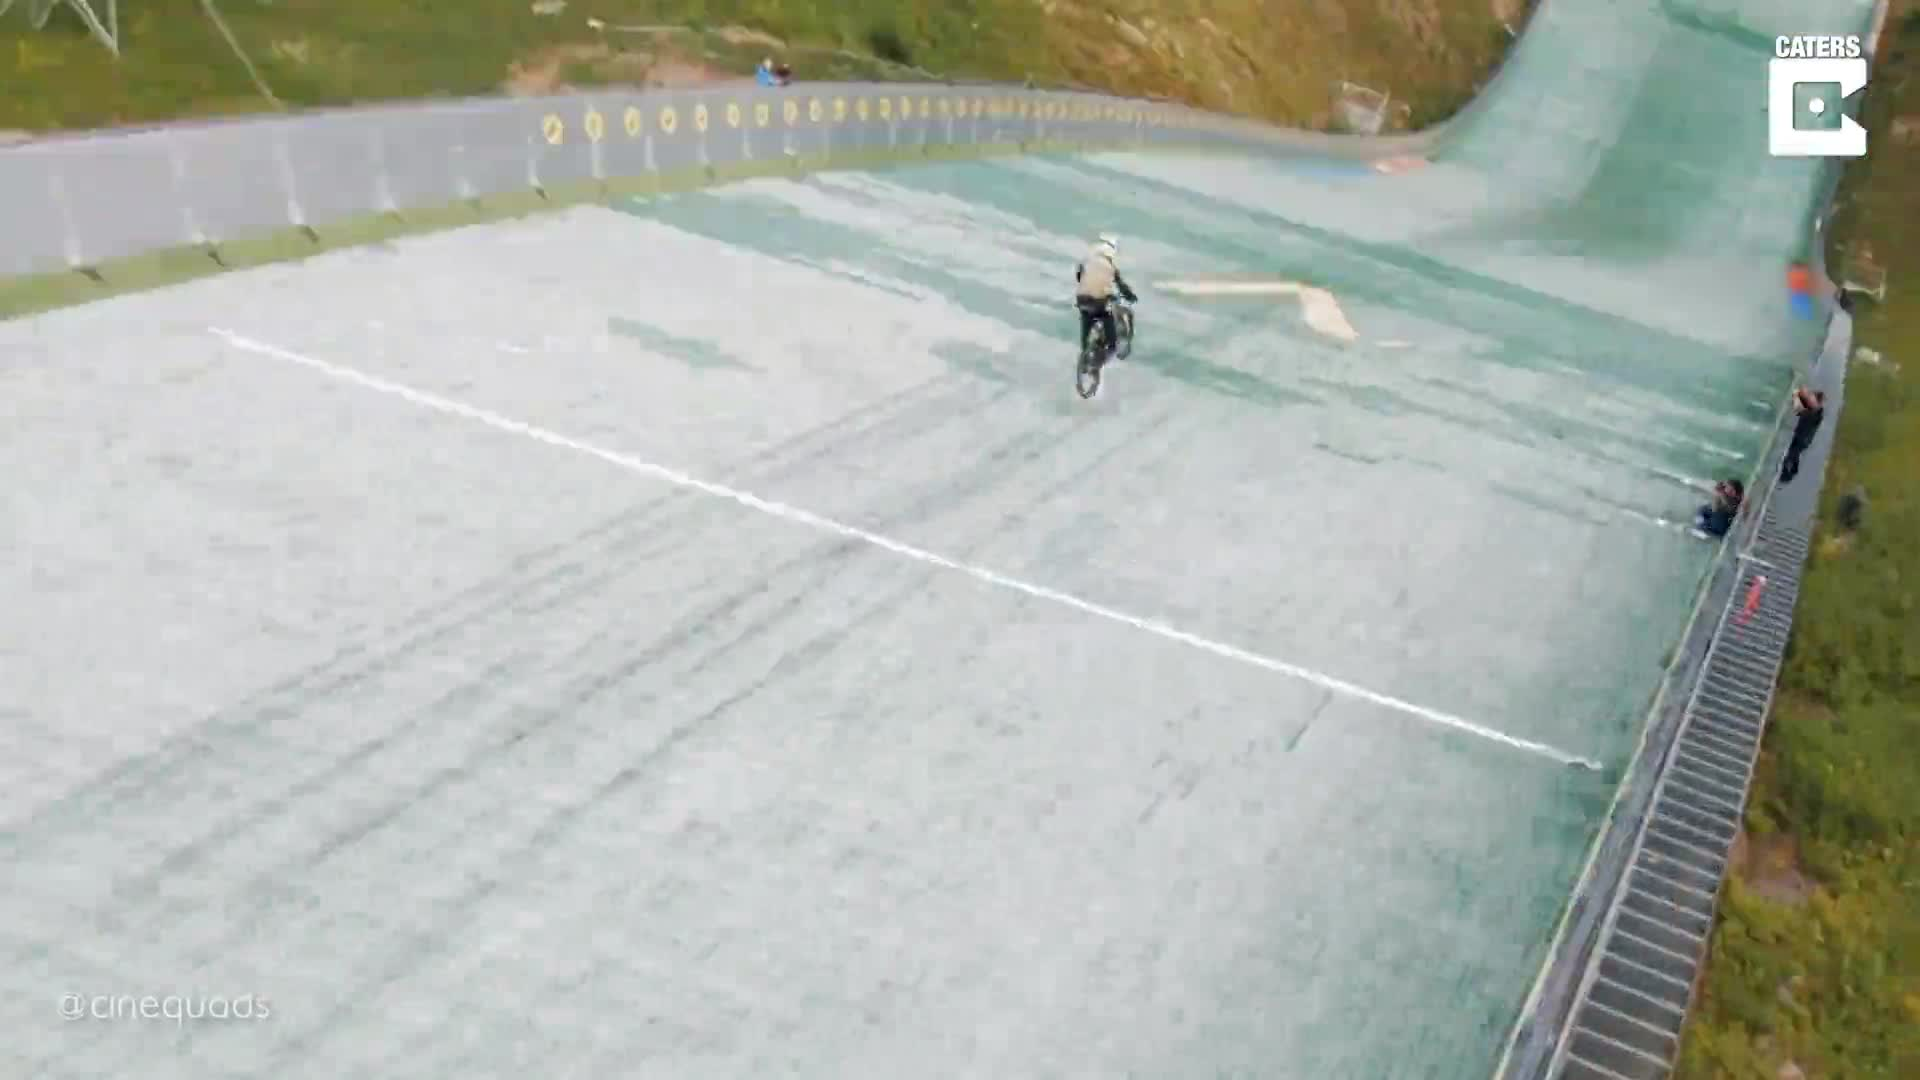 WORLD RECORD ATTEMPT RESULTS IN EPIC CRASH CAPTURED BY CINEMATIC DRONE